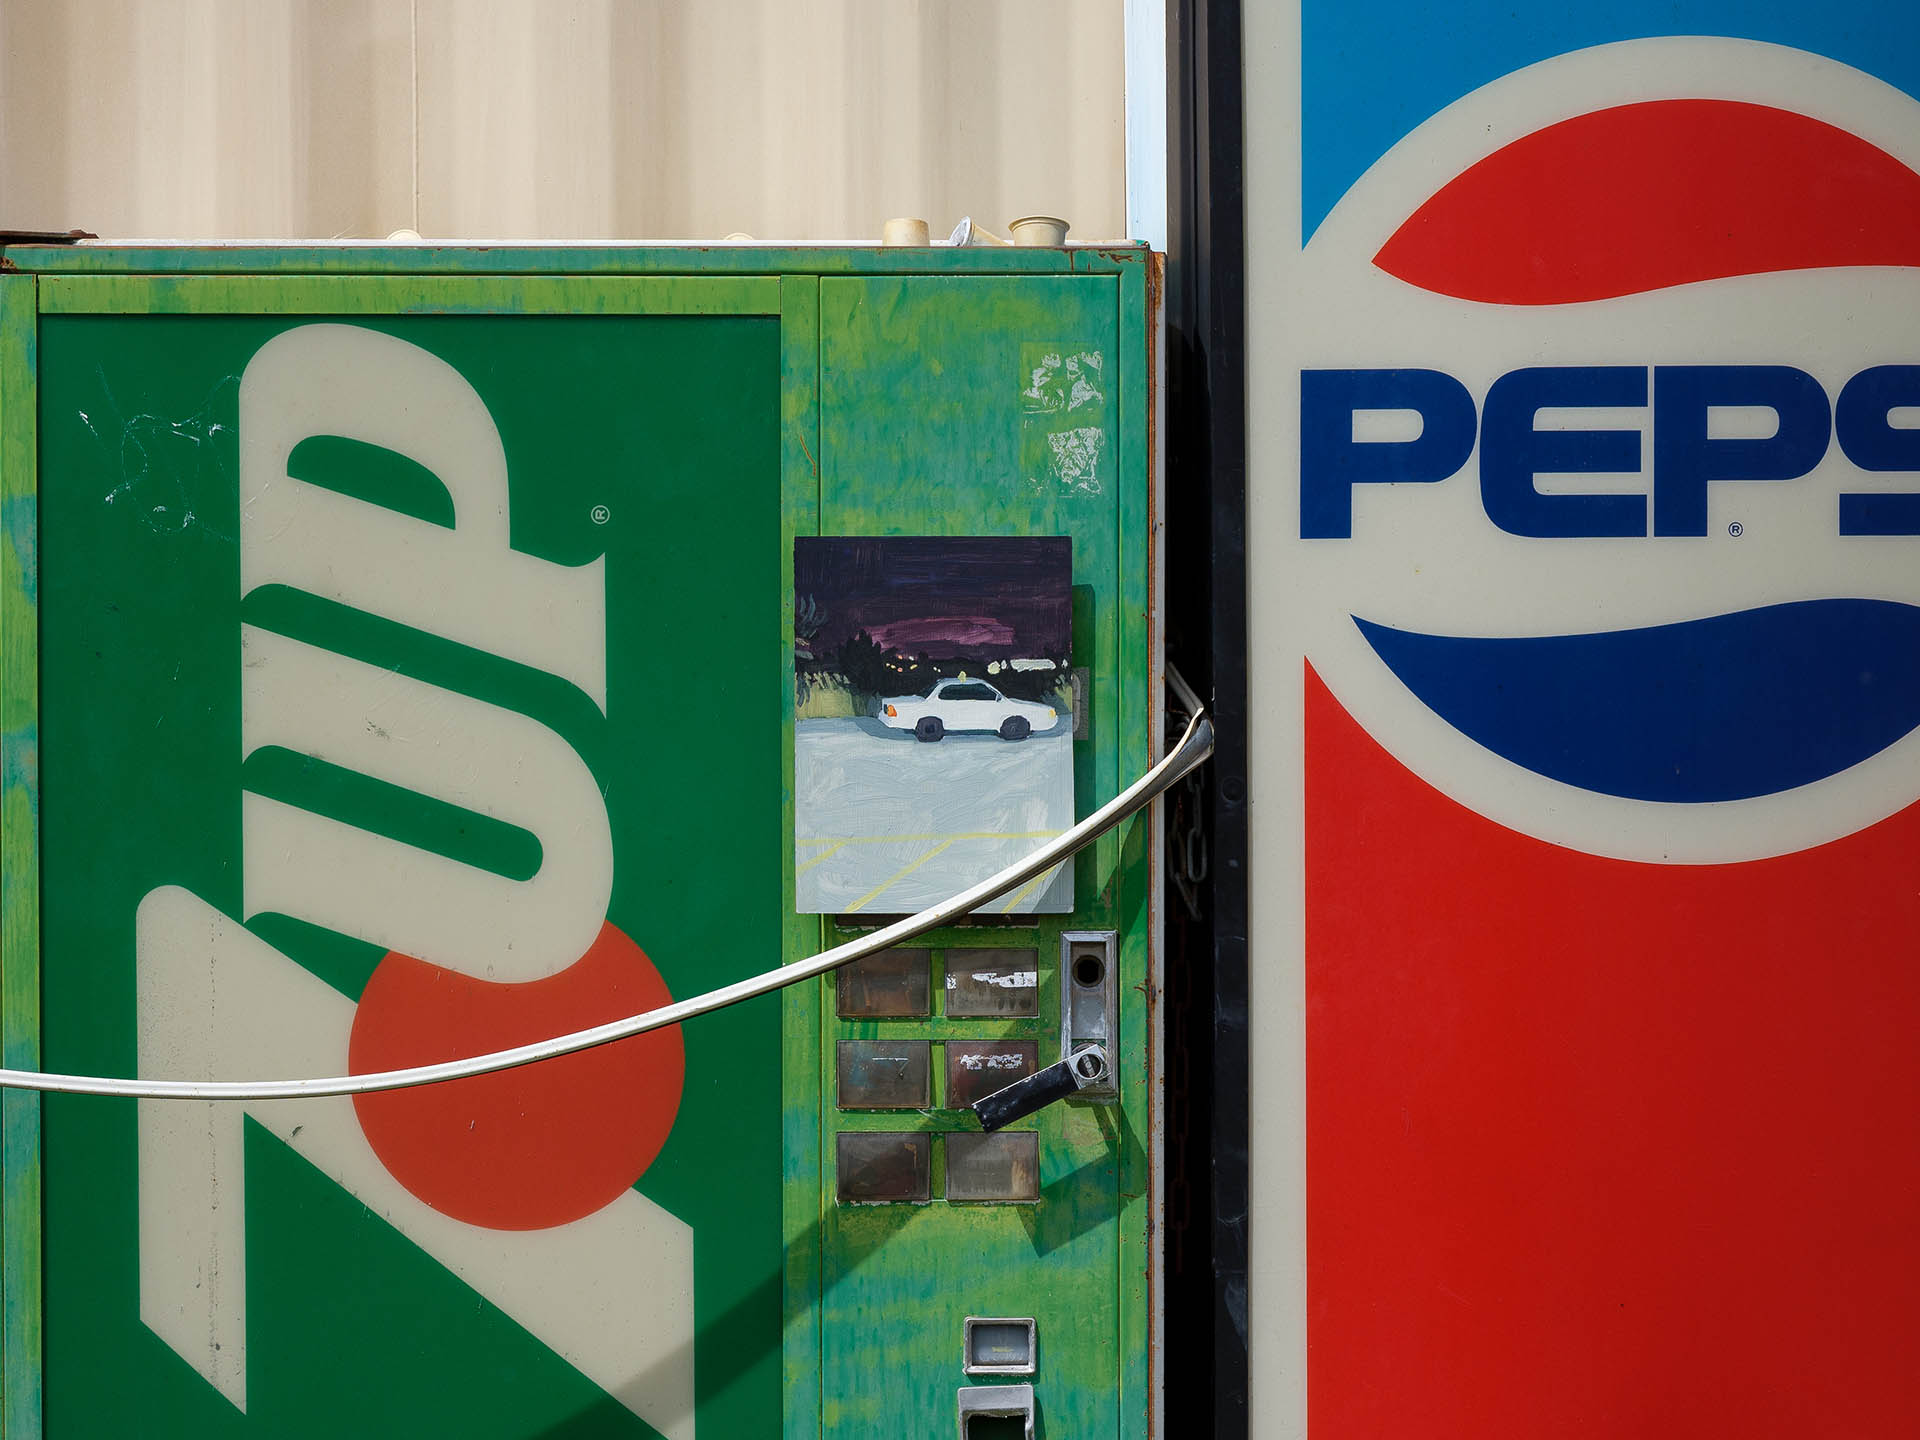 An installation view of Claudia Keep's painting, Bangor, 10:32 PM, captured by photographer Tag Christof in the Western United States in 2021 for MARCH. The image shows a painting hung outside on a 7Up vending machine.